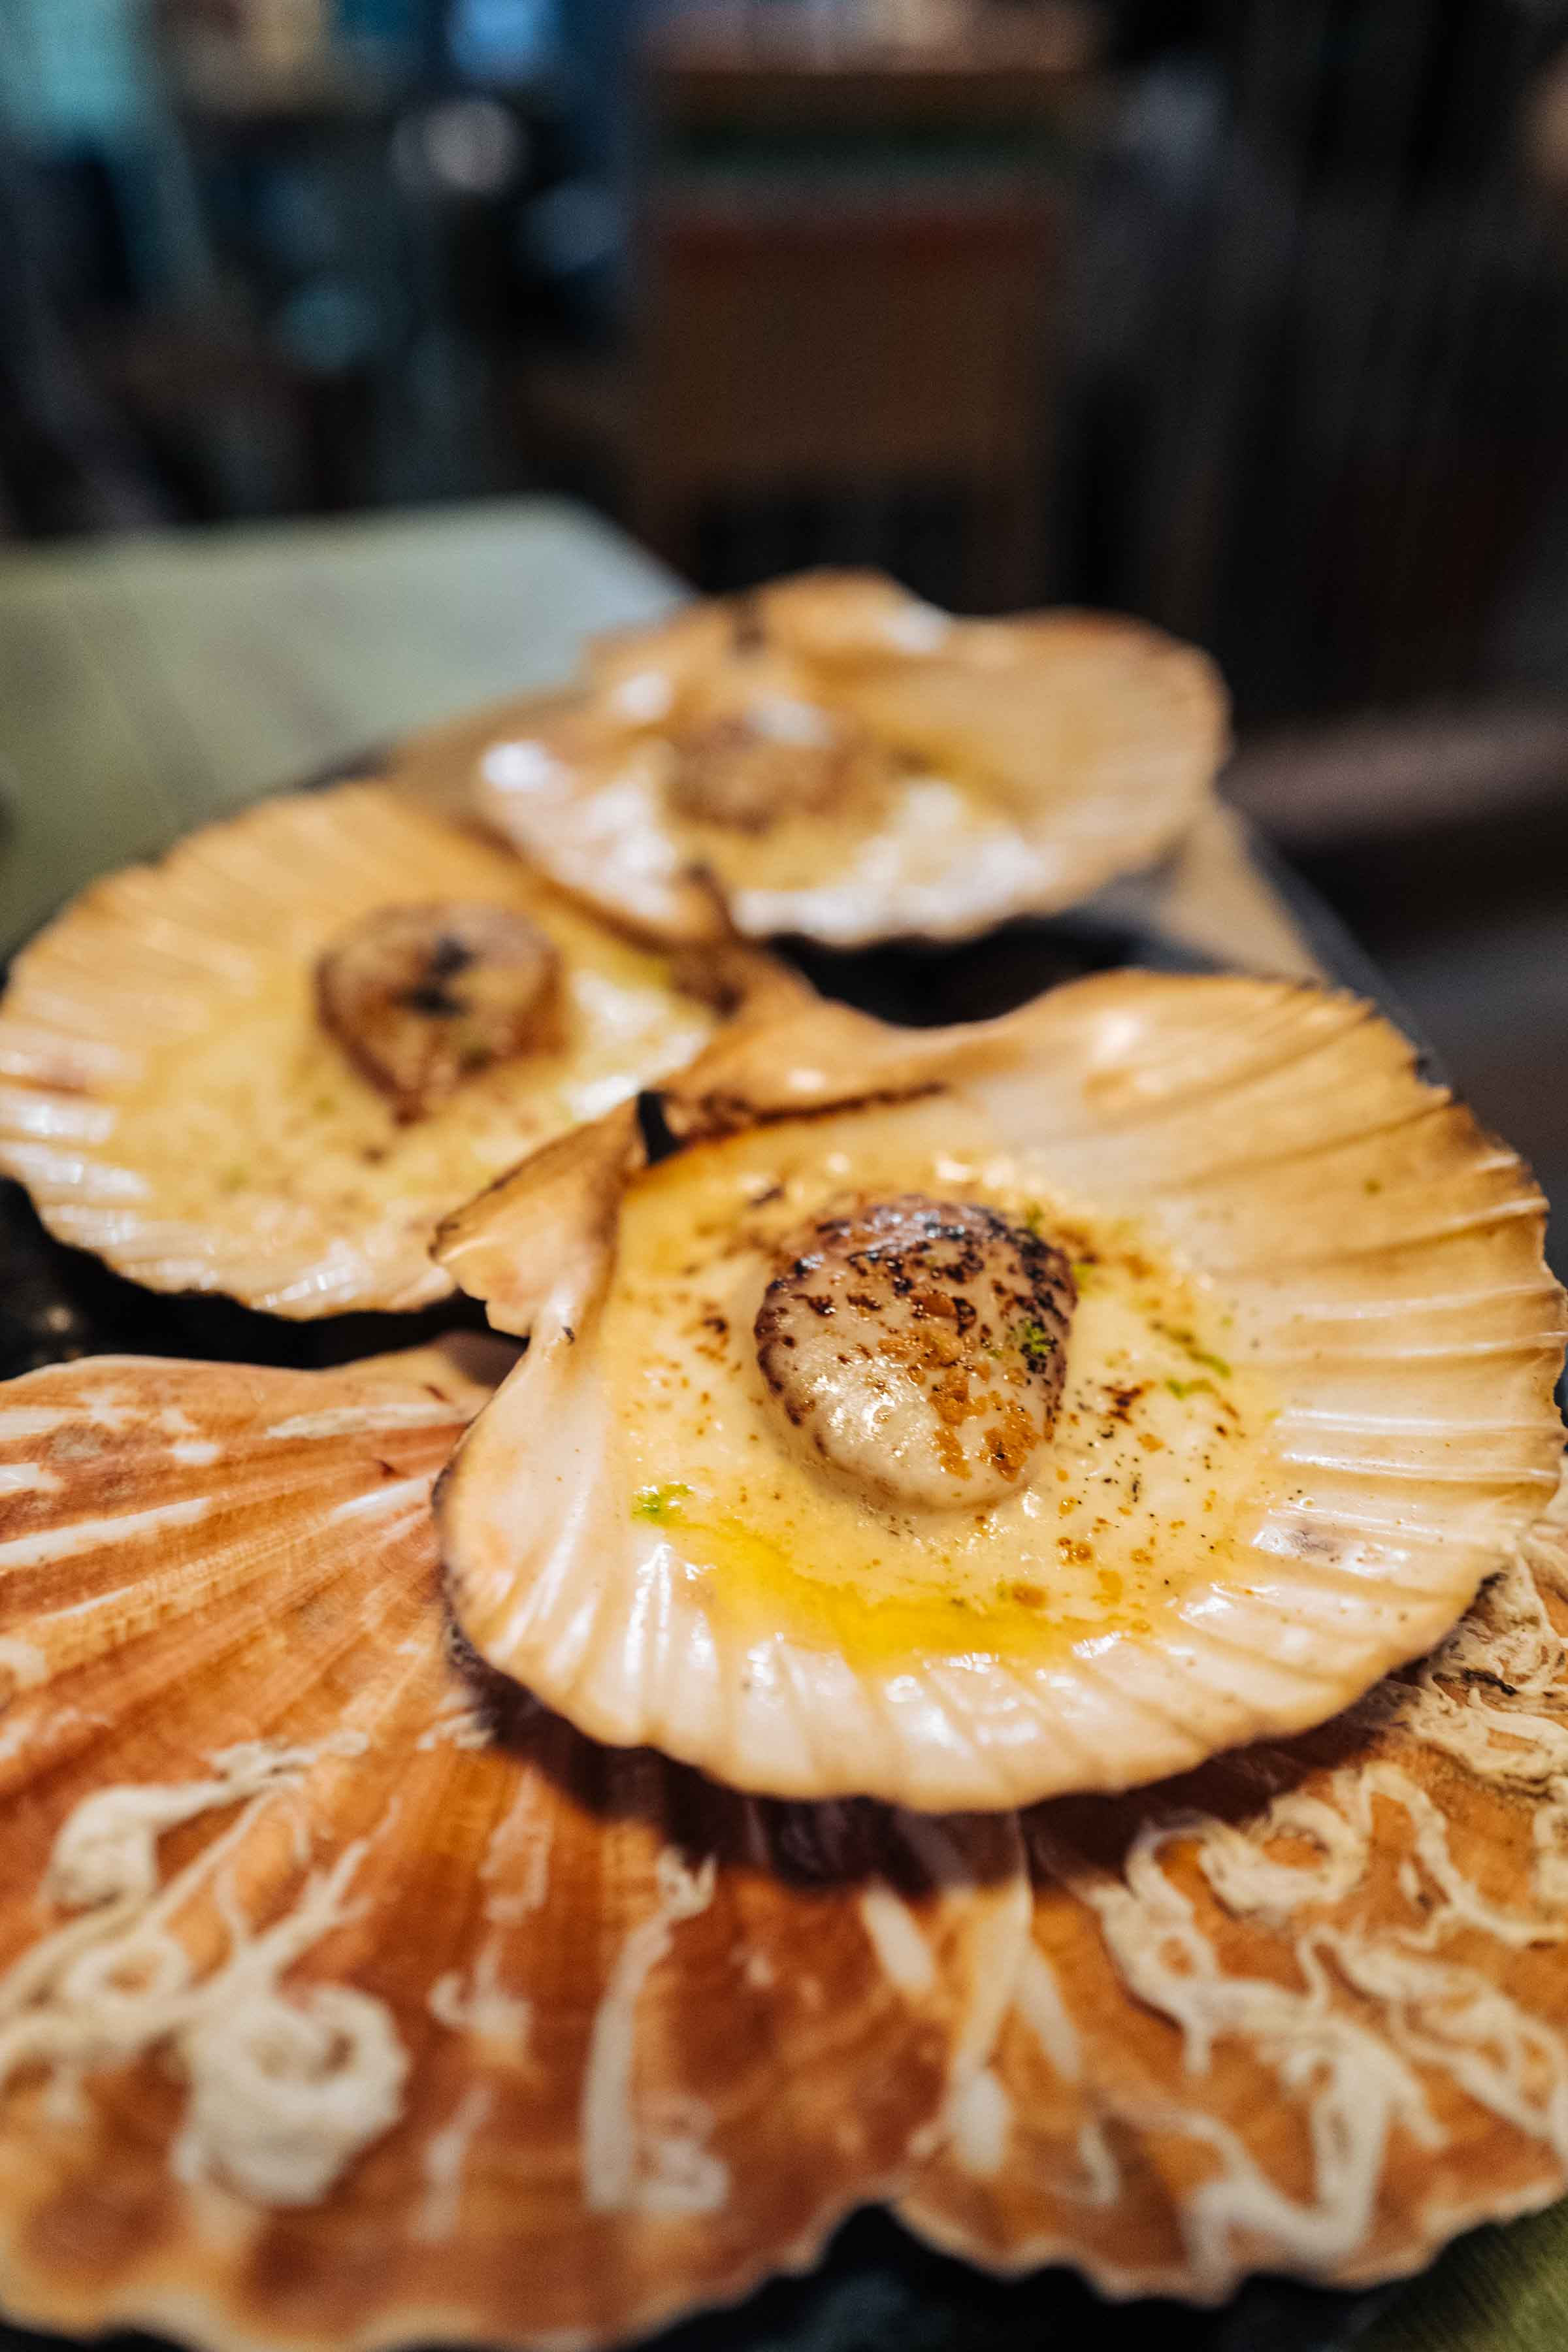 Don't miss the aged Parmigiano Reggiano foam topped grilled scallops served in their shells, in this Geneva Peruvian Restaurant | thetasteedit.com #geneva #food #switzerland #scallops #travel